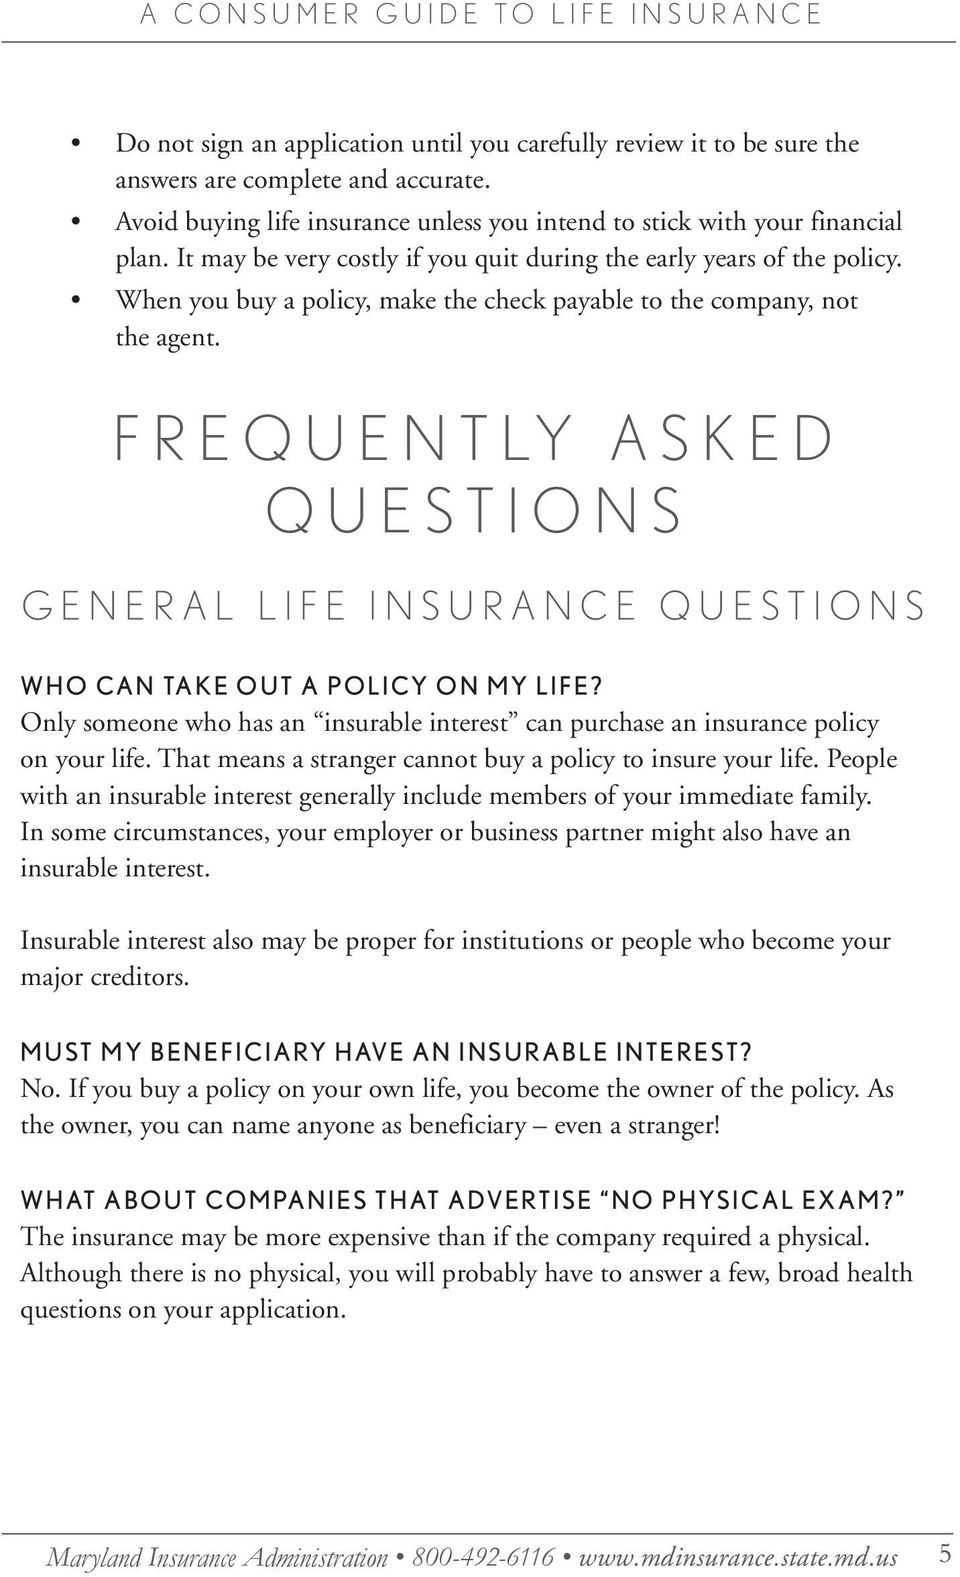 Frequently Asked Questions General Life Insurance Questions Who can take out a policy on my life? Only someone who has an insurable interest can purchase an insurance policy on your life.